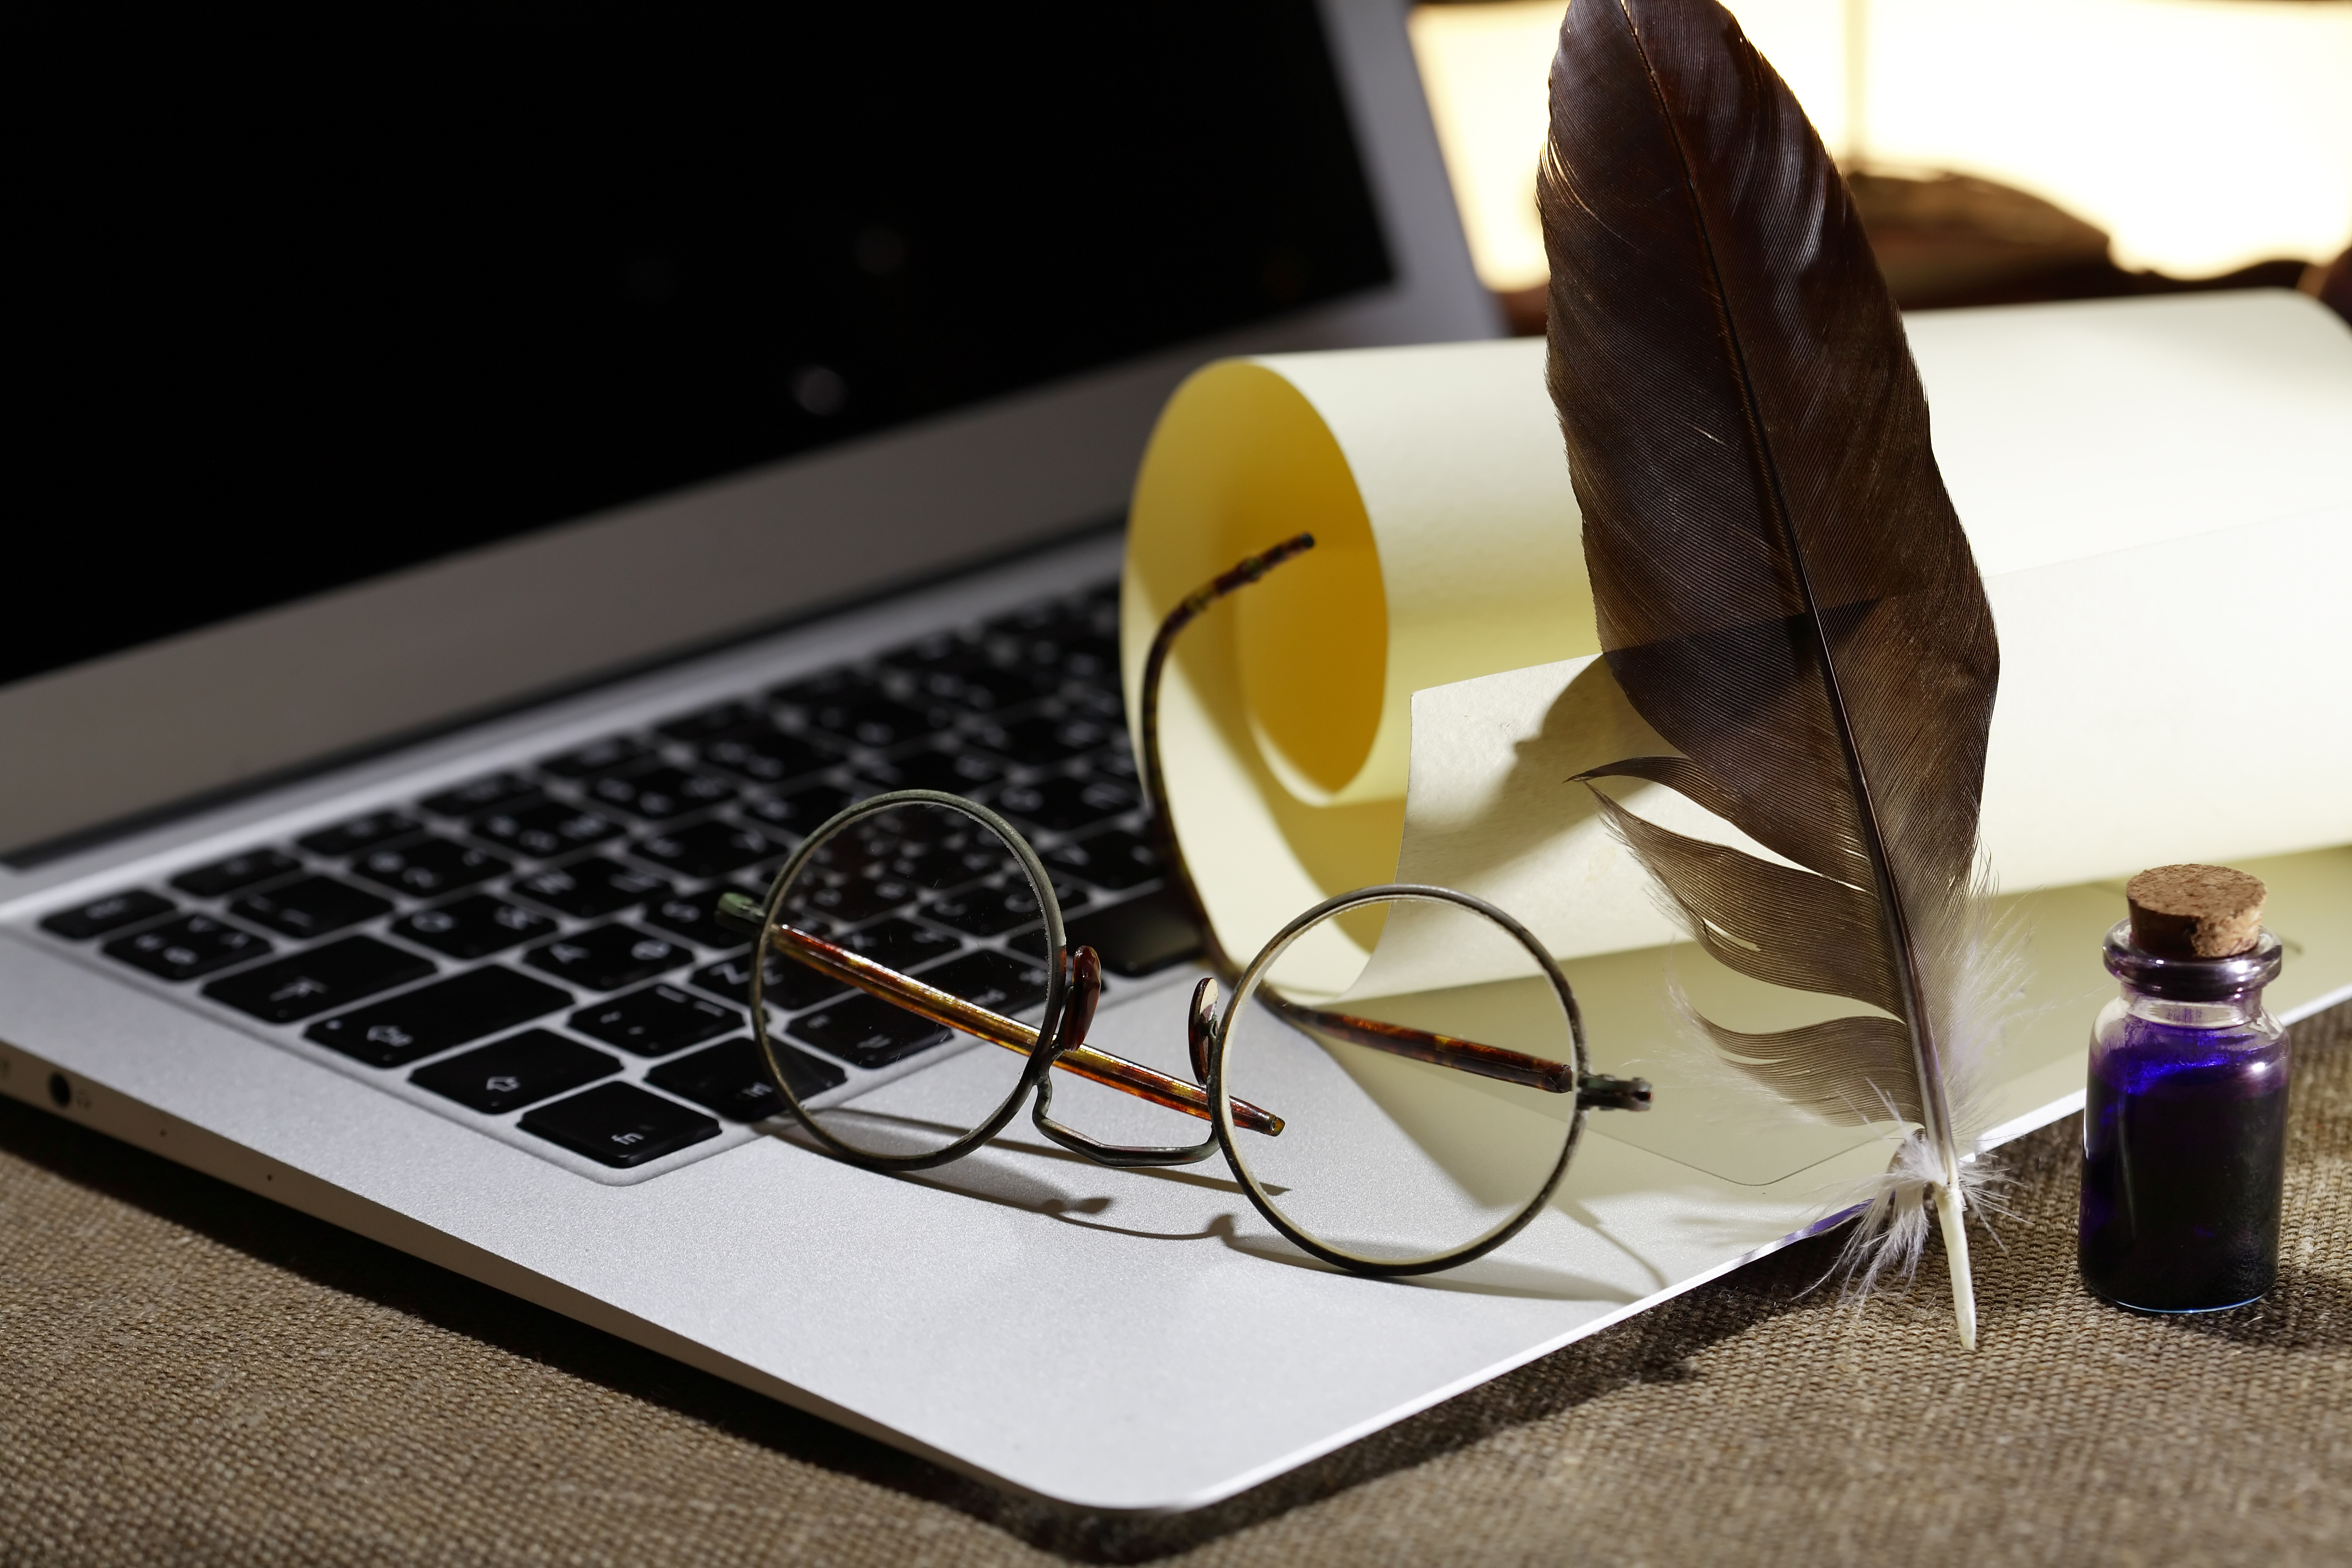 Modern literature. Still life with scroll and quill on modern laptop